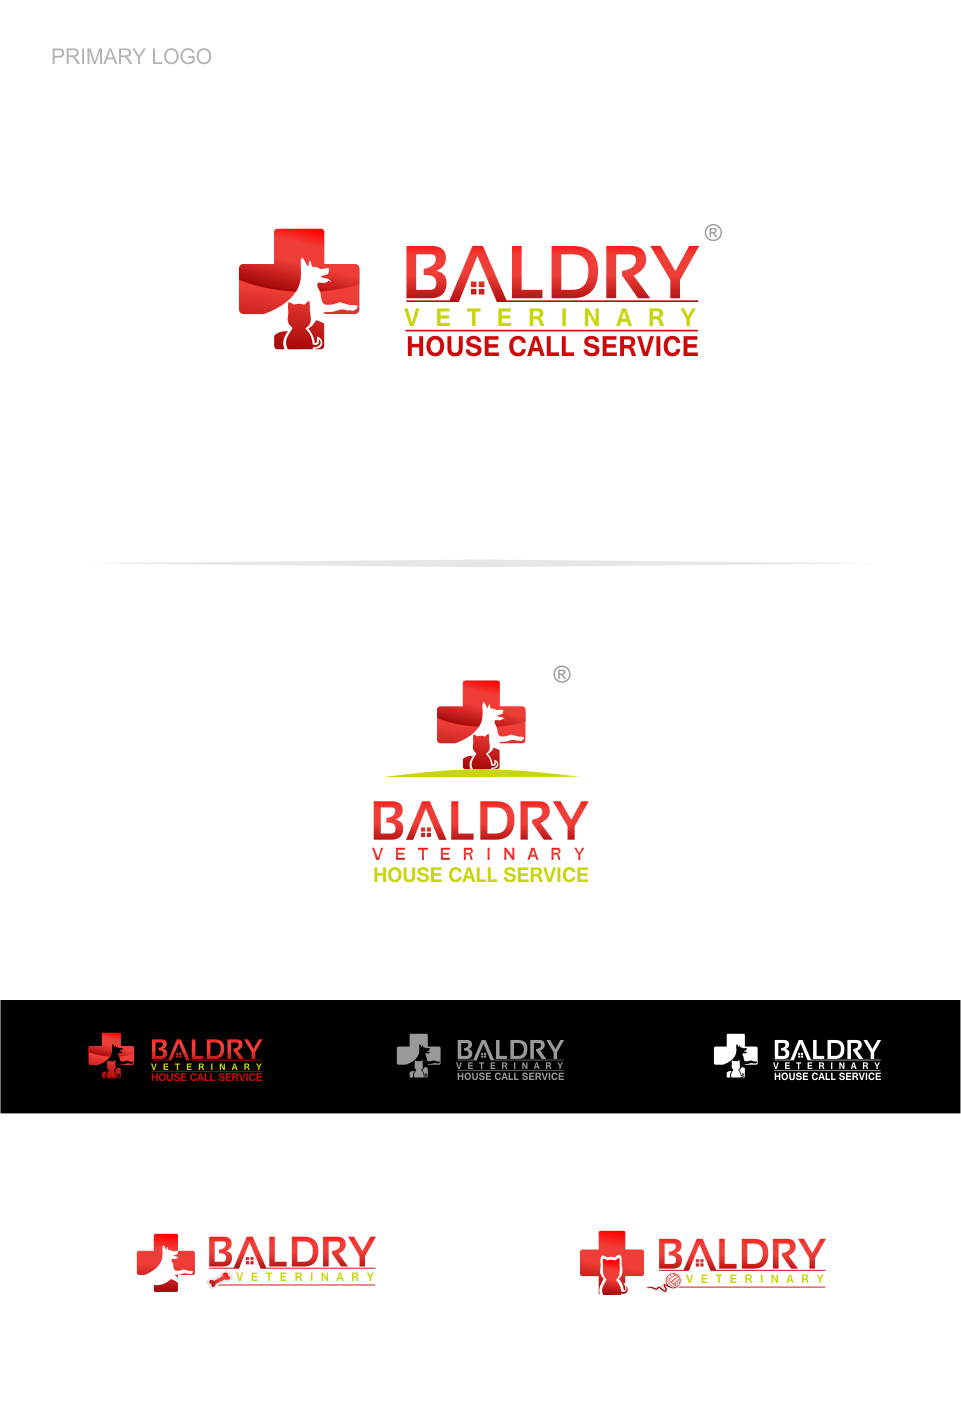 Logo Design by Mitchnick Sunardi - Entry No. 51 in the Logo Design Contest Captivating Logo Design for Baldry Veterinary House Call Service.